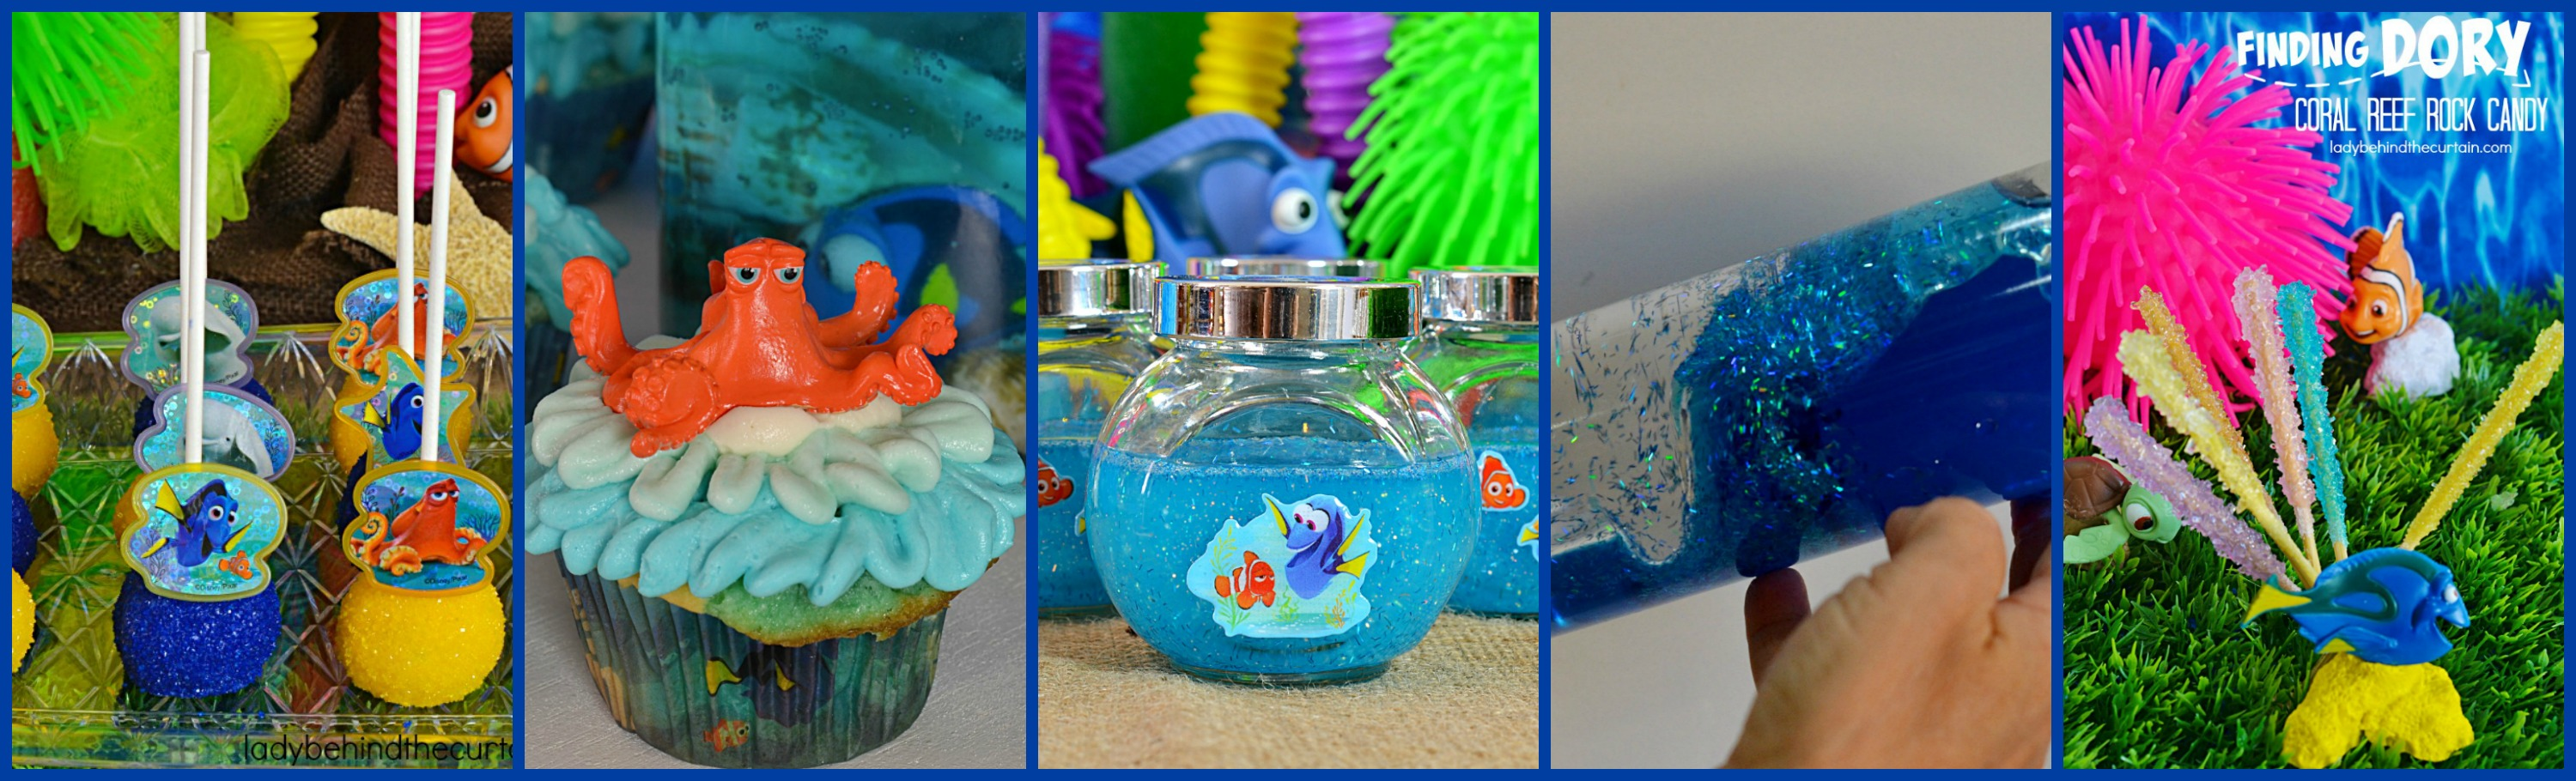 Ocean in a bottle party favor 5 finding dory coral reef rock candy